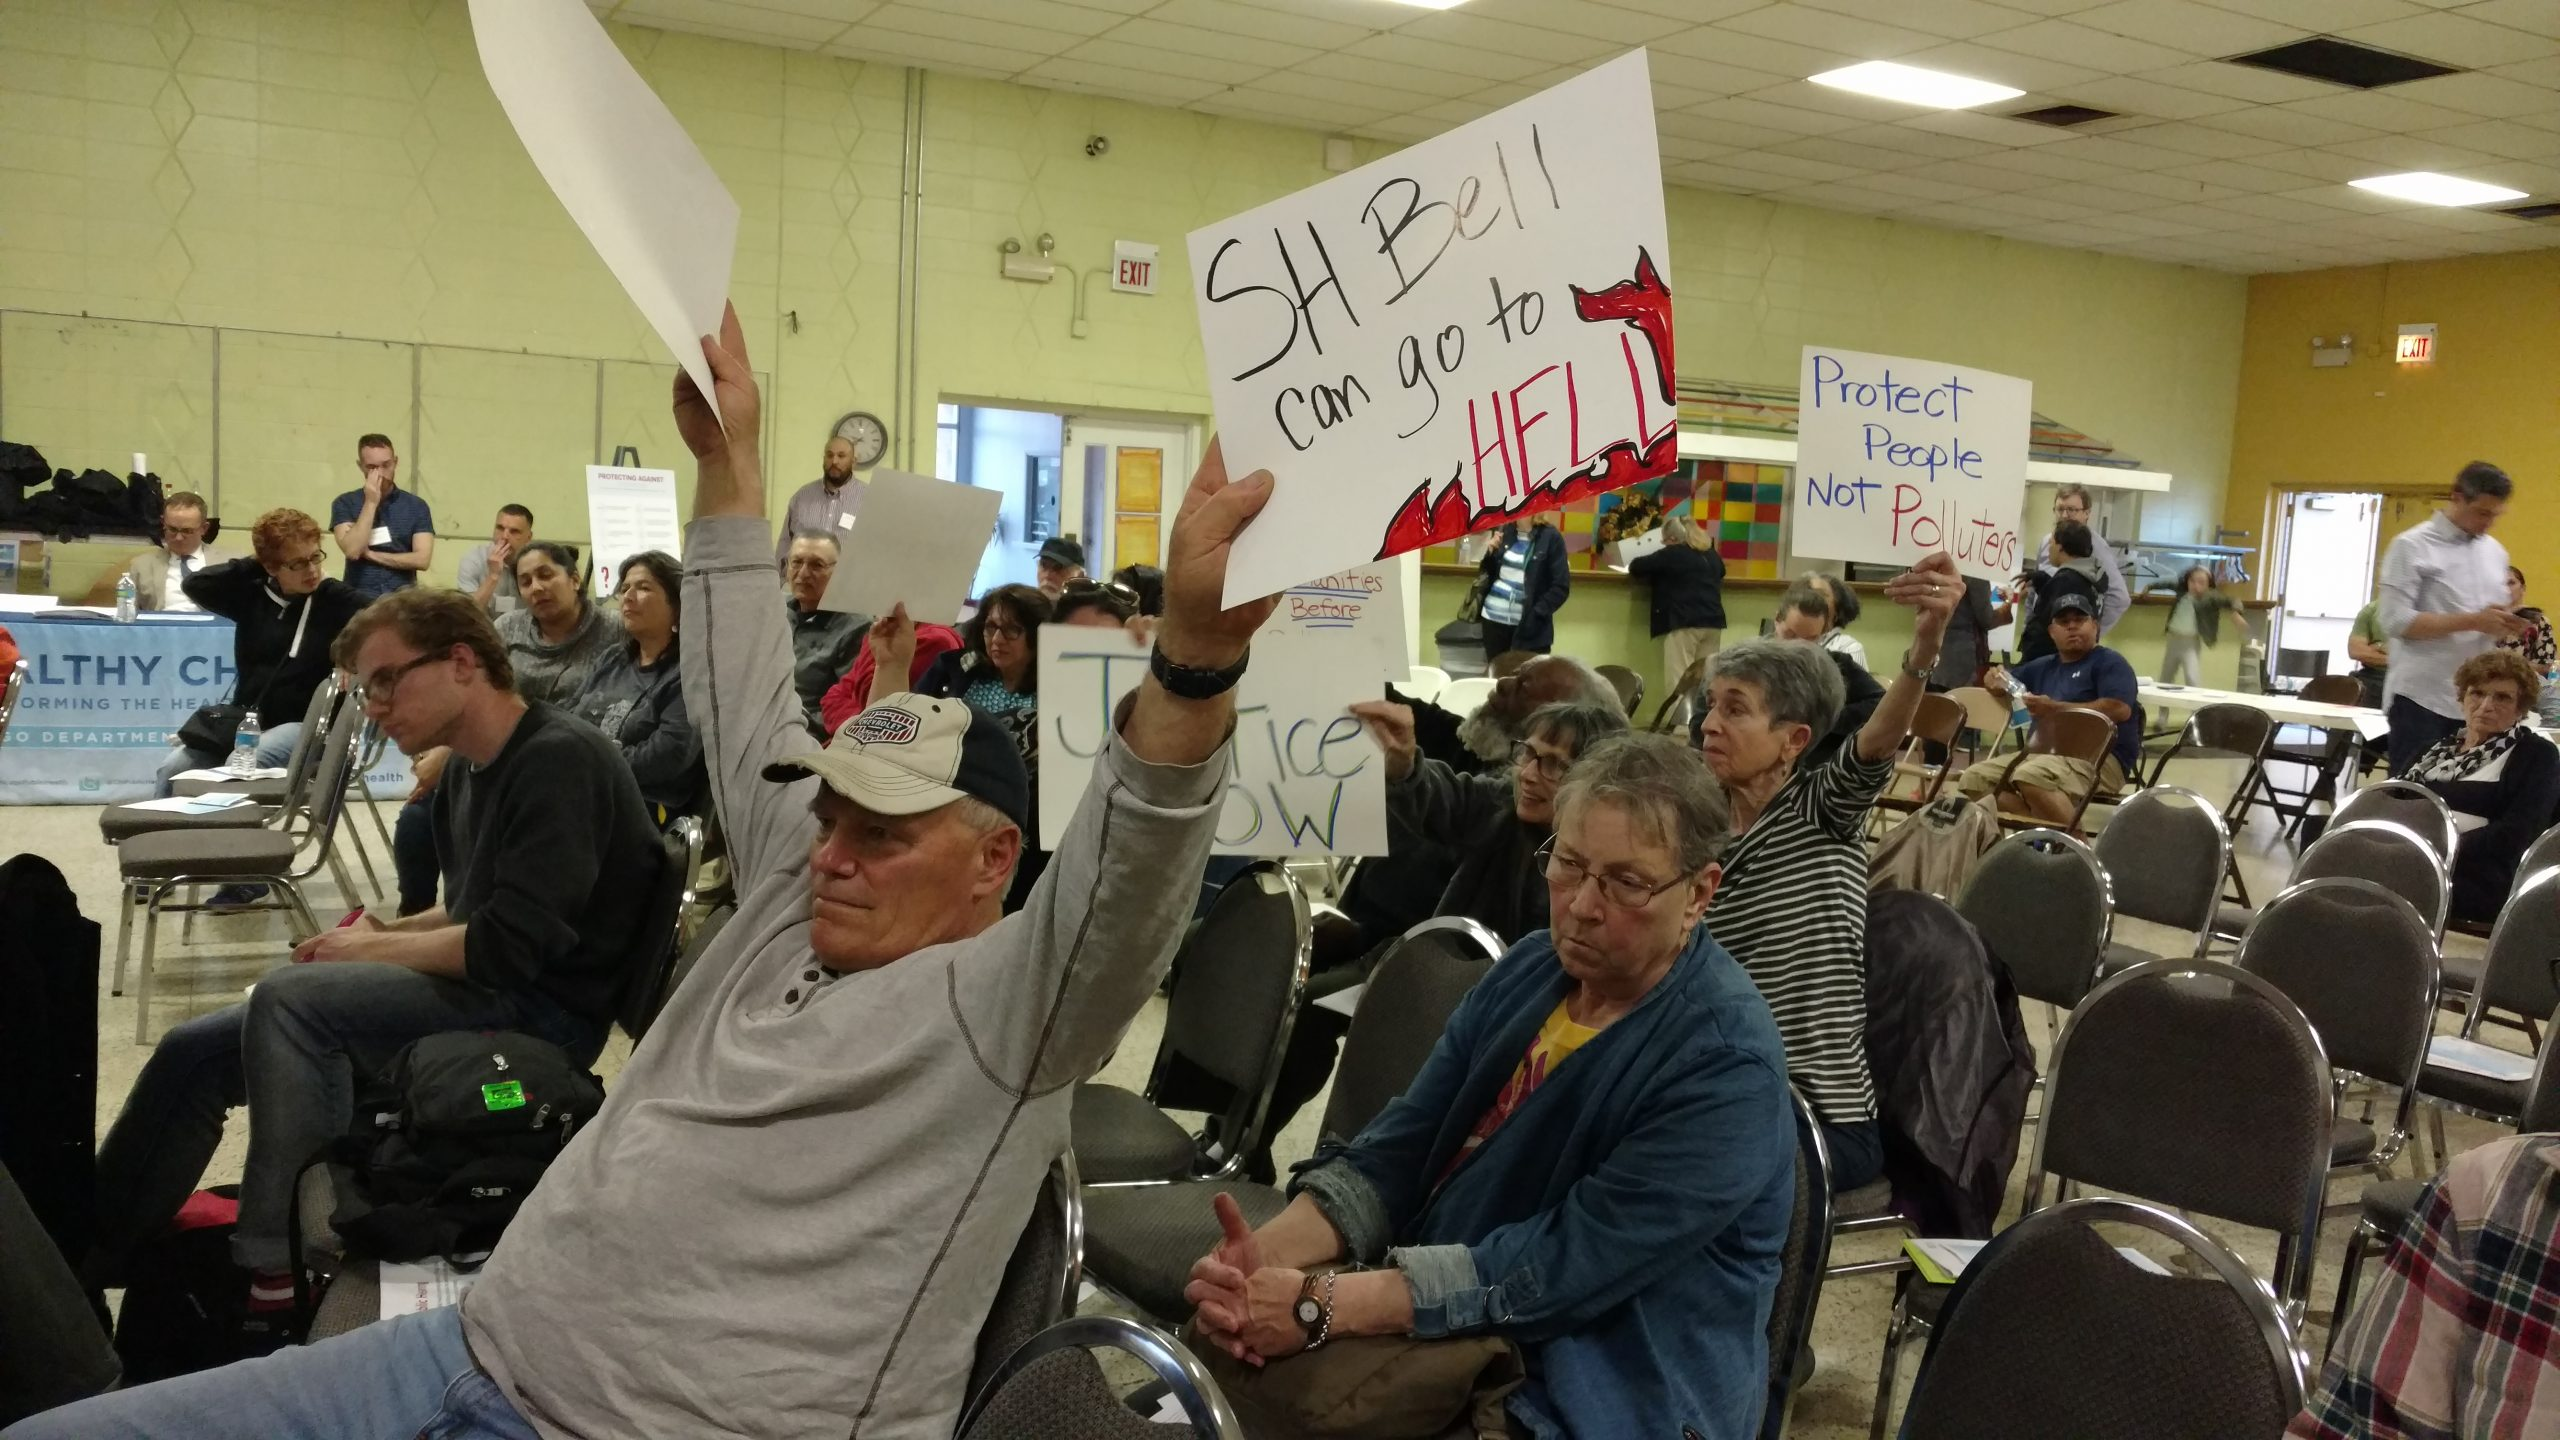 Though the crowd thinned out by the end of the meeting, some residents remained till the end, brandishing homemade signs and calling government officials to shut down S.H. Bell's manganese storage and transportation operations